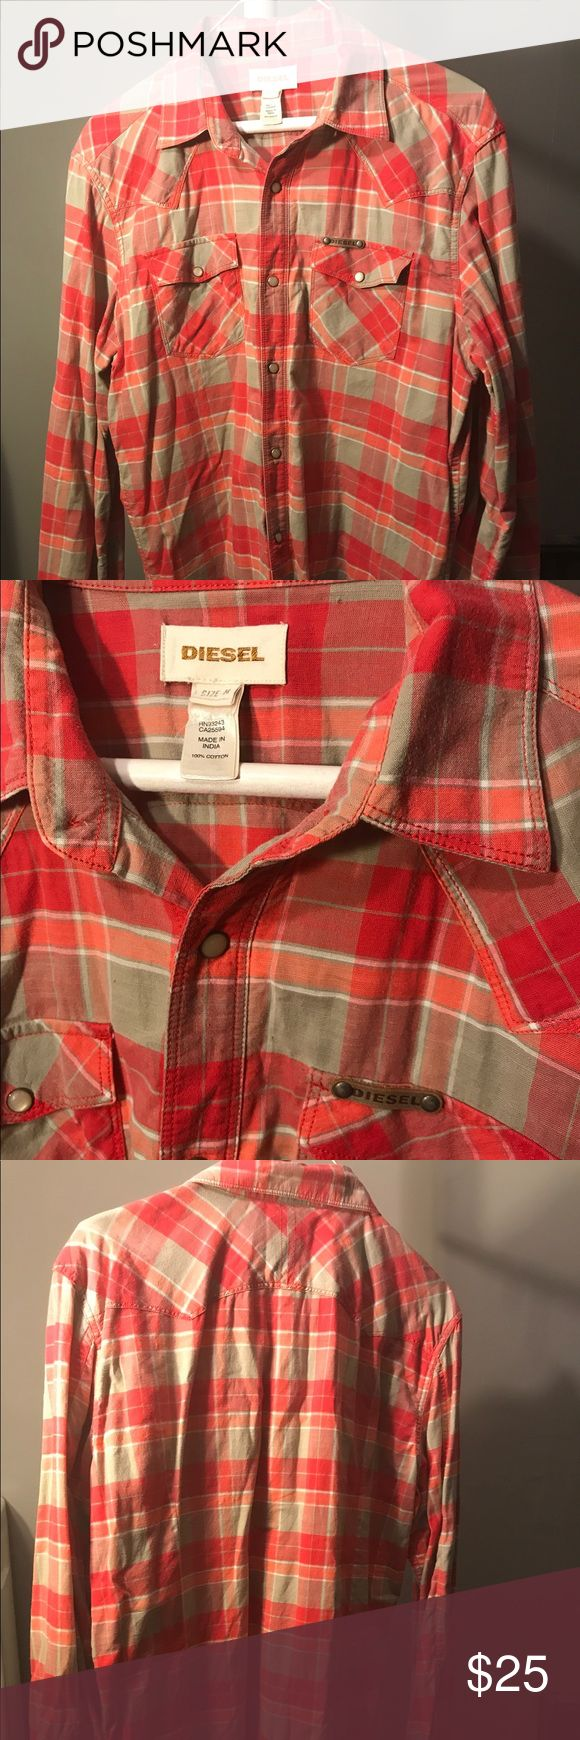 Diesel shirt. Size - Medium. Good quality Medium Diesel shirt. No stains. Good quality. Red, White and Gray. Diesel Shirts Casual Button Down Shirts